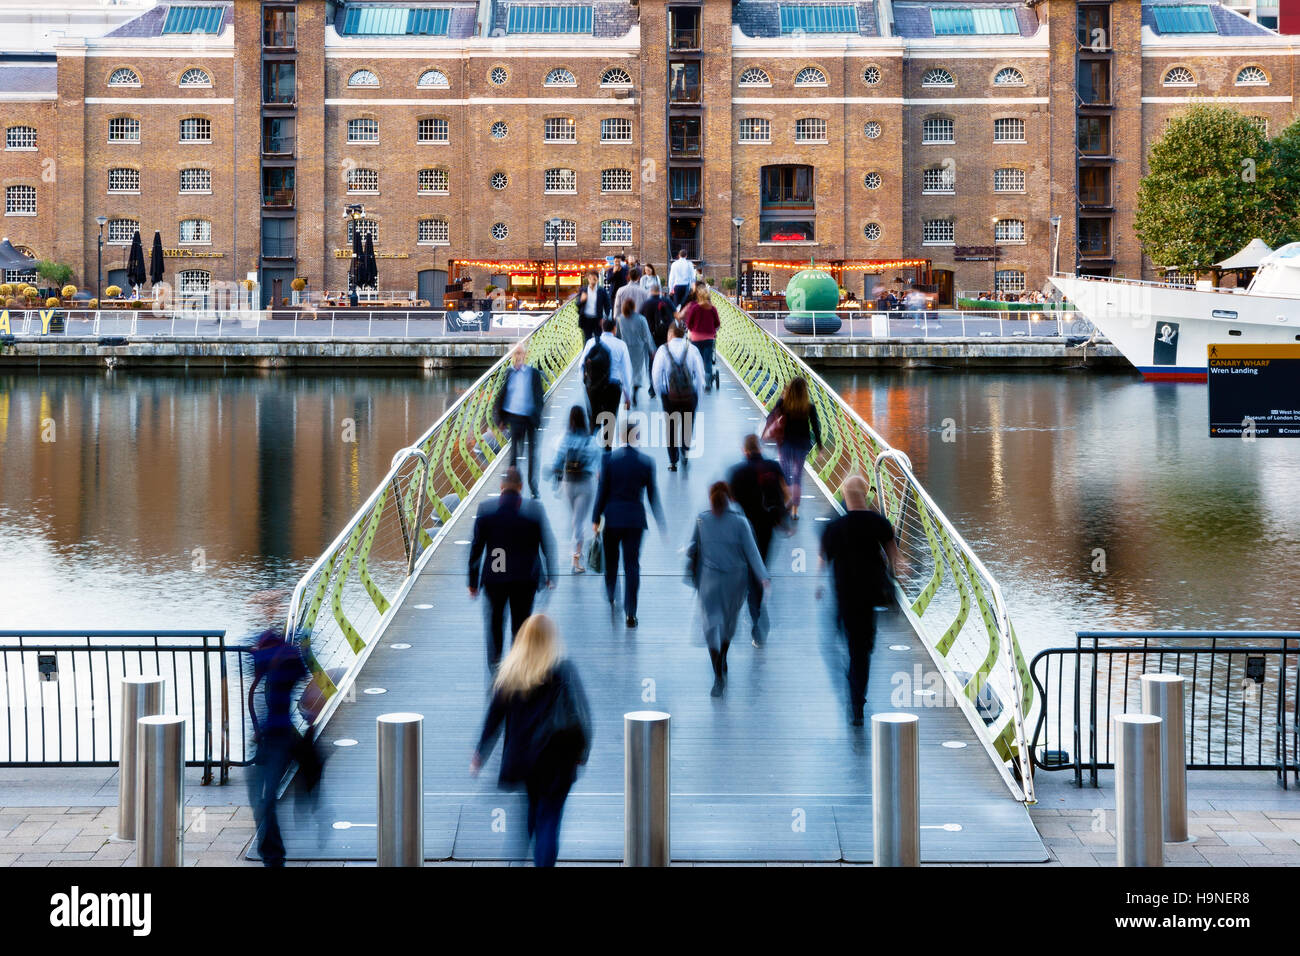 London, UK - September 21, 2016 - People crossing the North Dock Footbridge from Canary Wharf to West India Quay - Stock Image